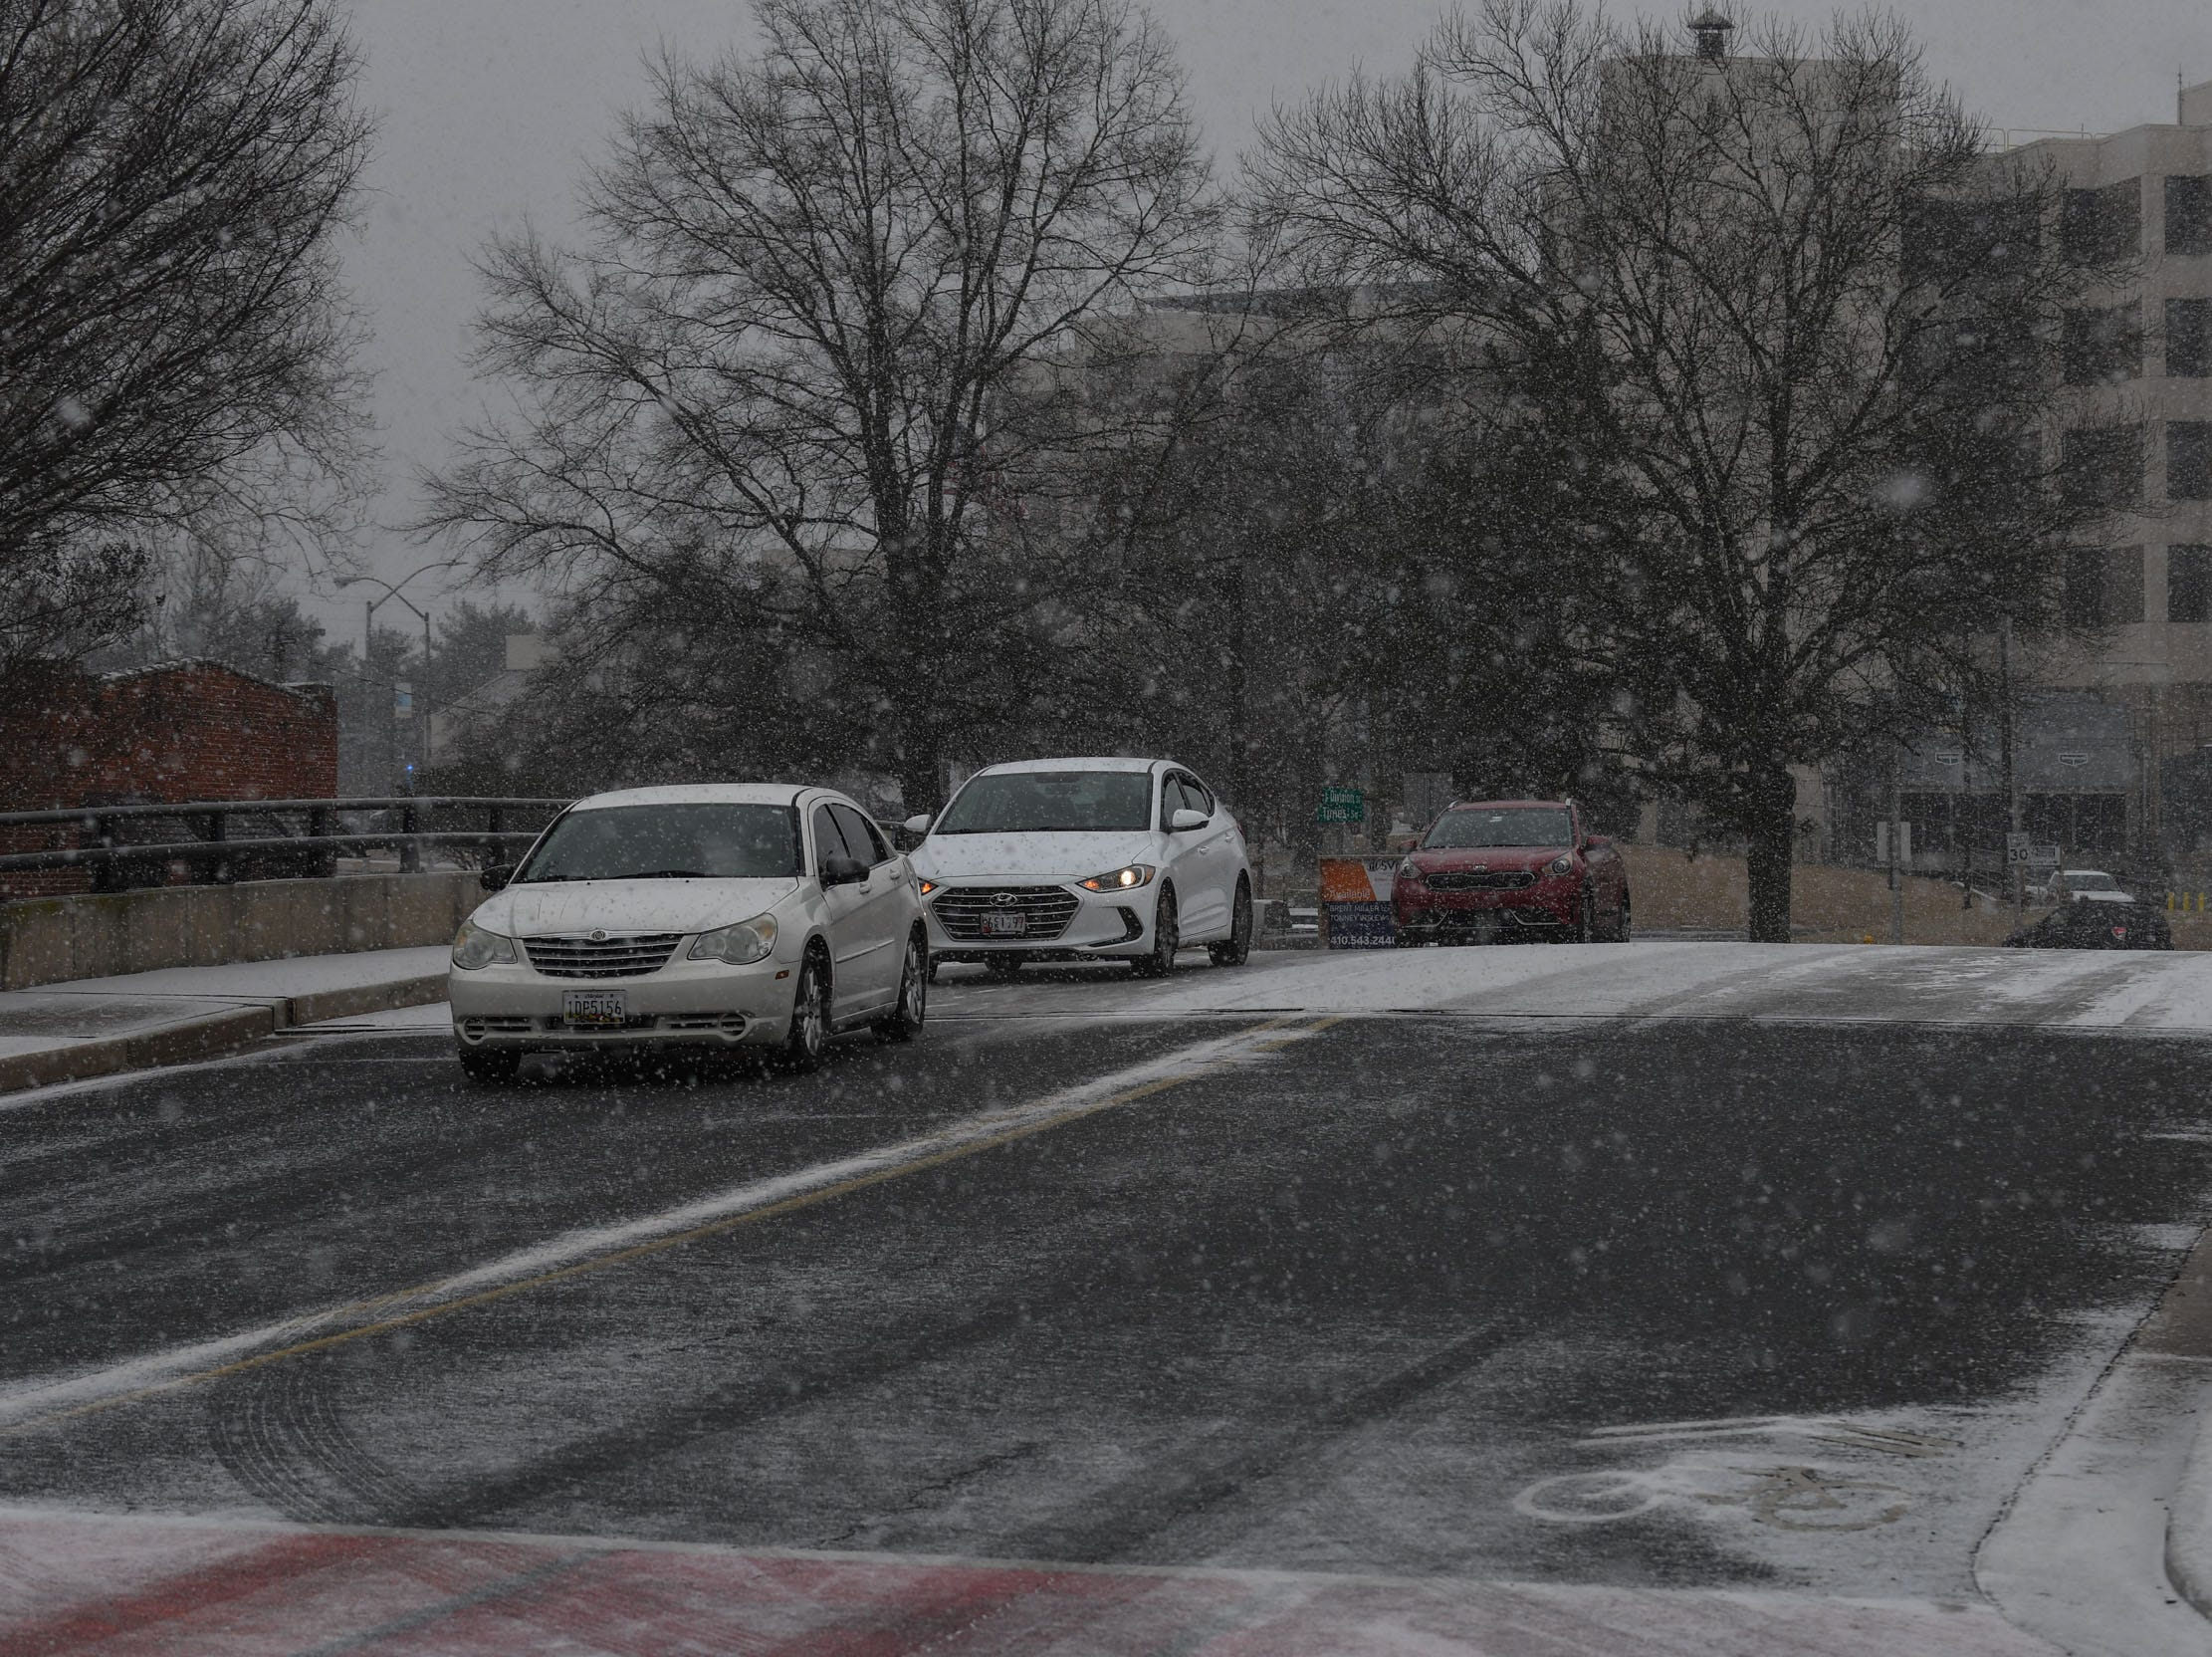 Snow starts to stick to the roads on Friday, Feb 1, 2019 as a snow front moves through Delmarva.